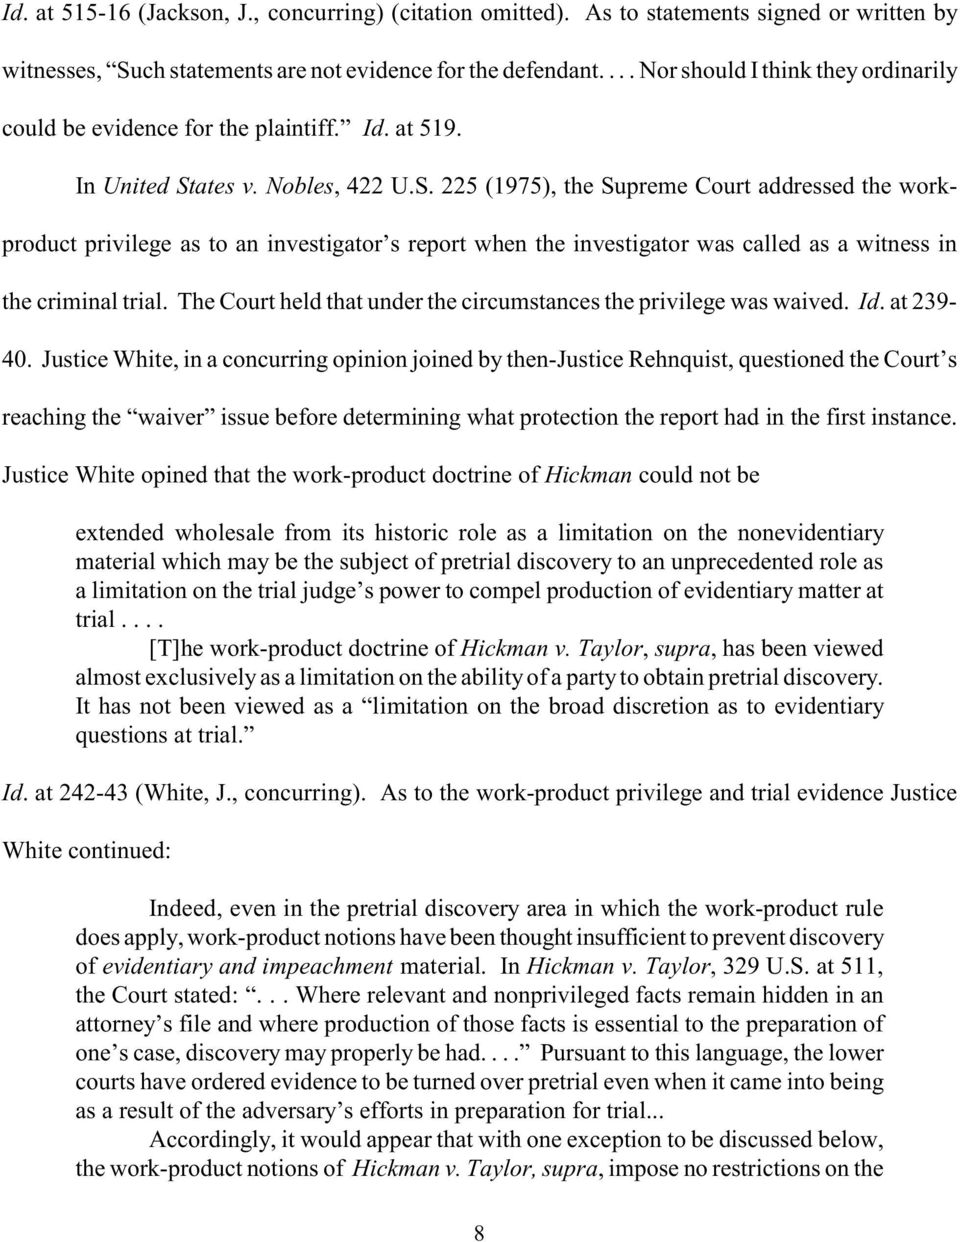 ates v. Nobles, 422 U.S. 225 (1975), the Supreme Court addressed the workproduct privilege as to an investigator s report when the investigator was called as a witness in the criminal trial.